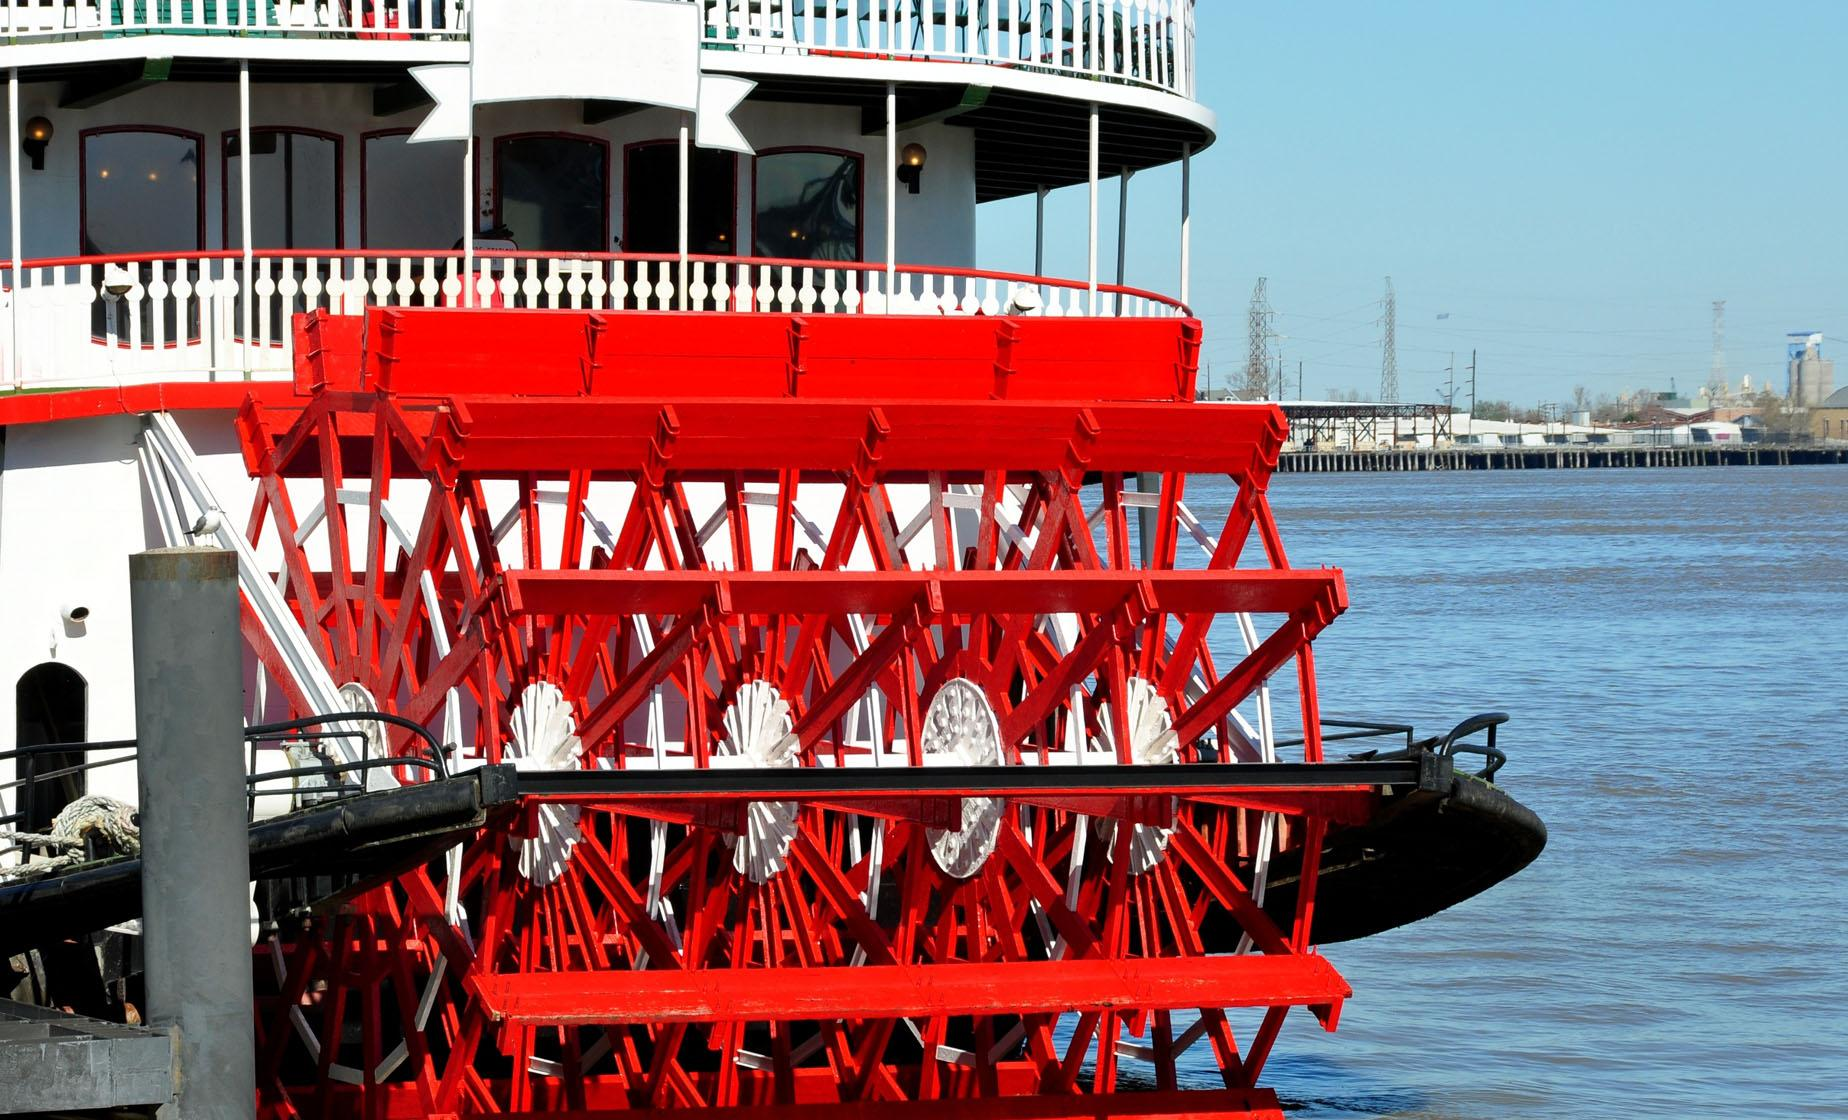 Steamboat Harbor Cruise With Lunch in New Orleans (Mississippi River, Chalmette Battlefield)